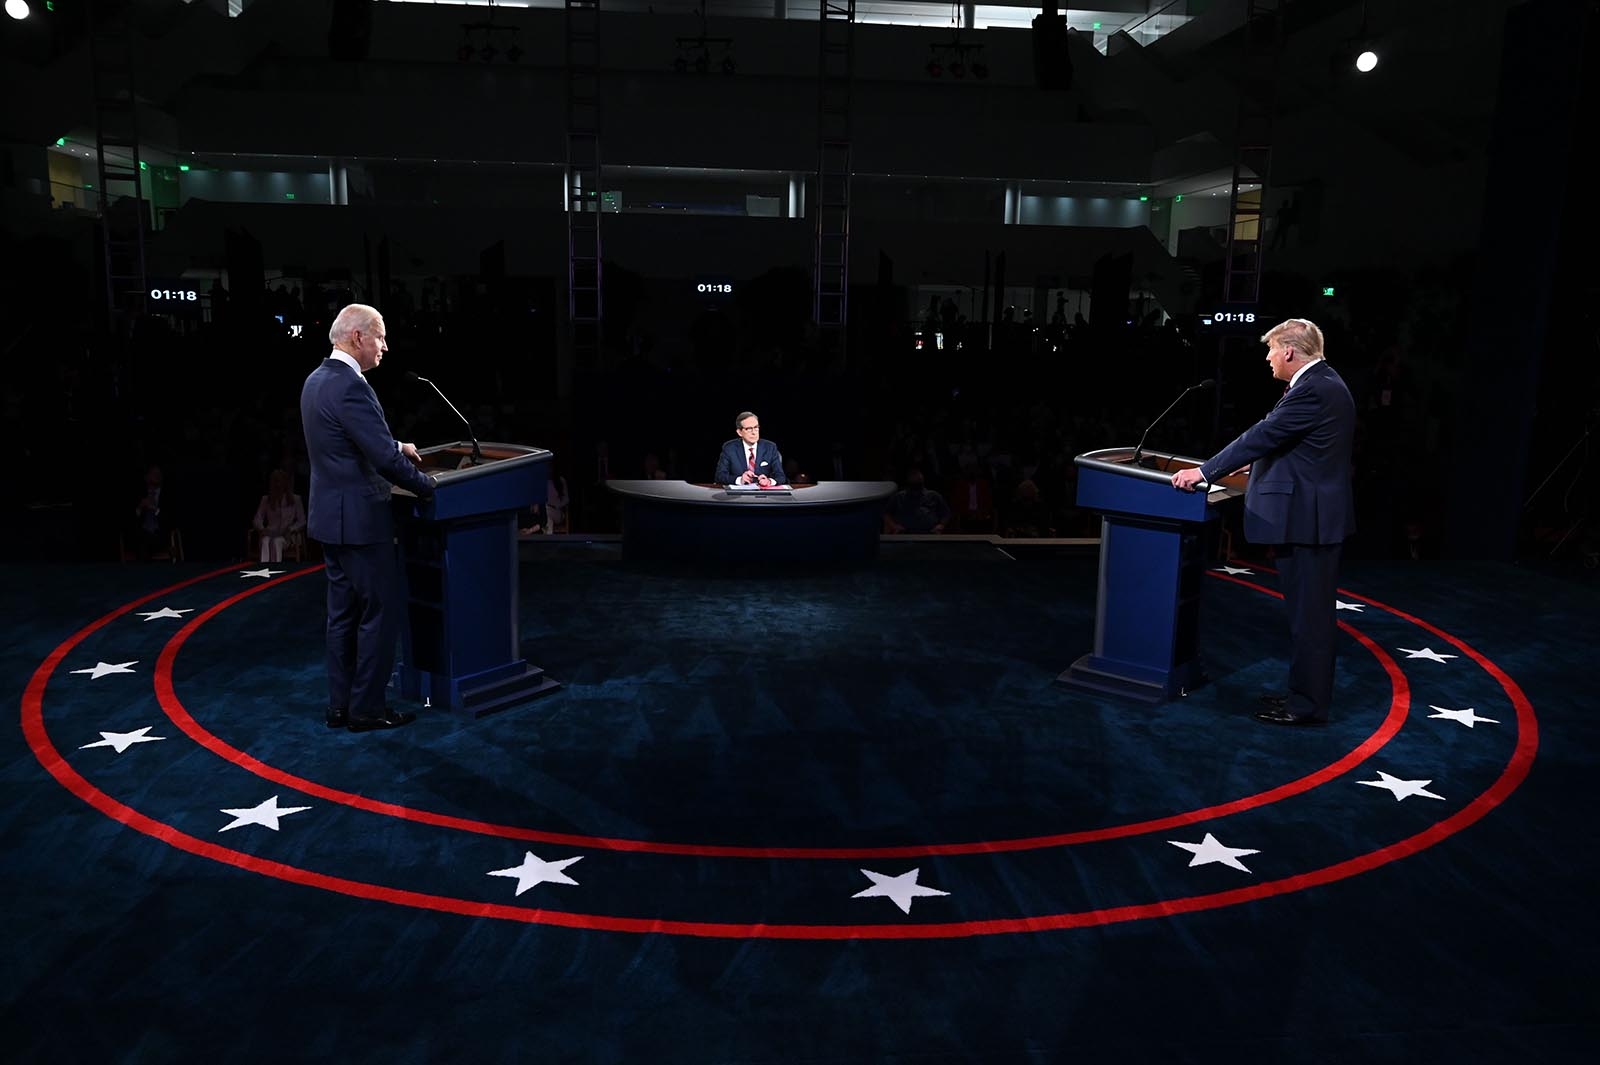 President Donald Trump and Democratic presidential candidate Joe Biden take part in the first presidential debate at Case Western Reserve University and Cleveland Clinic in Cleveland, Ohio, on September 29.